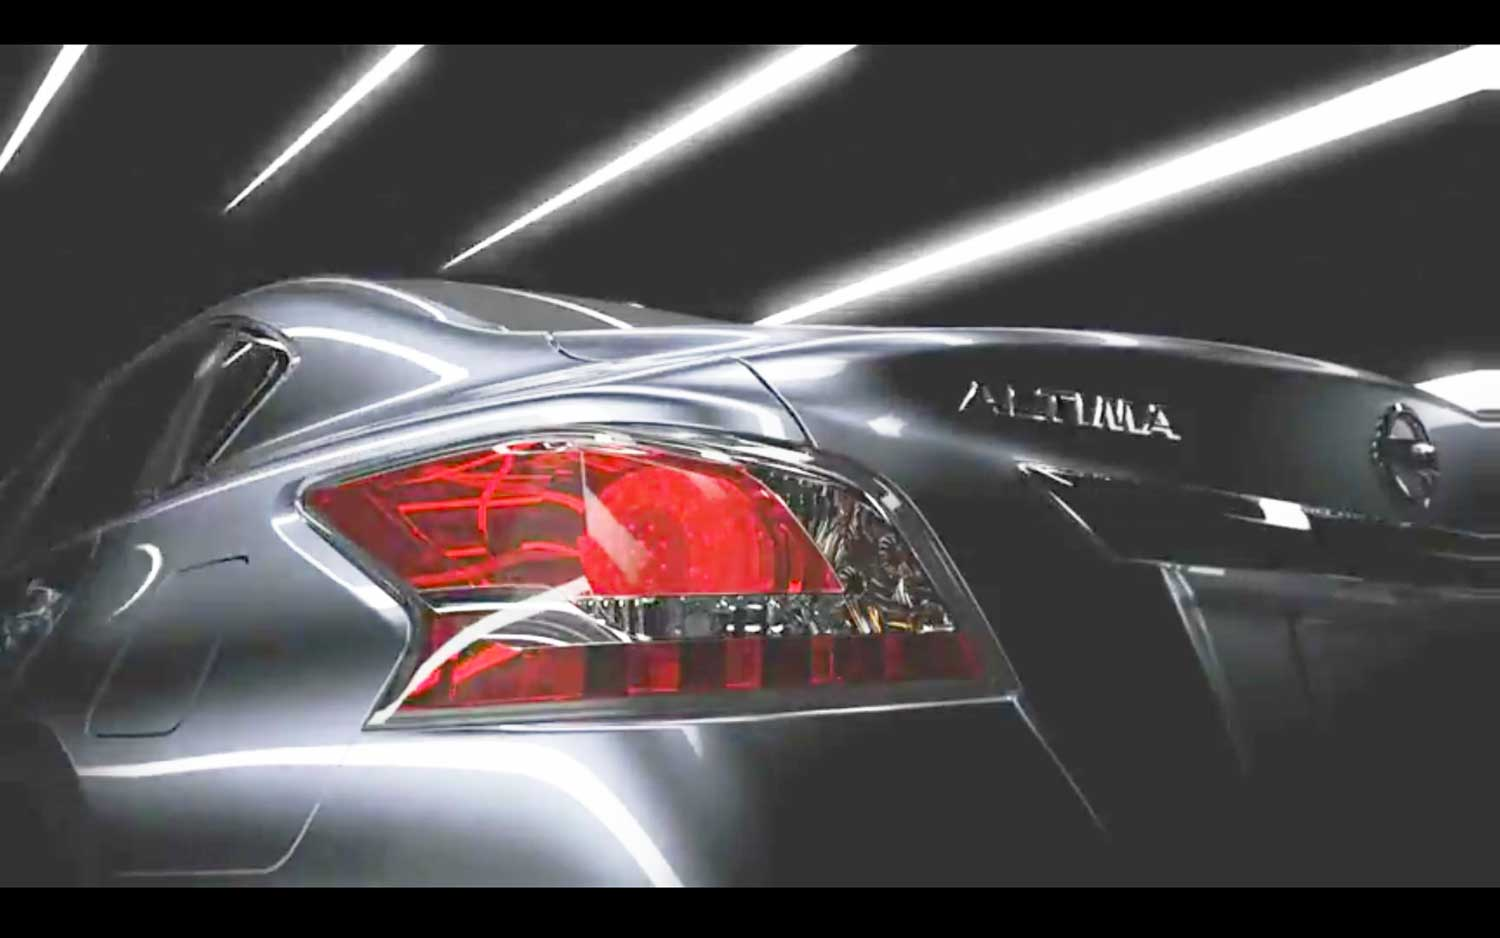 2013 Nissan Altima Tail Light Teaser Picture 2